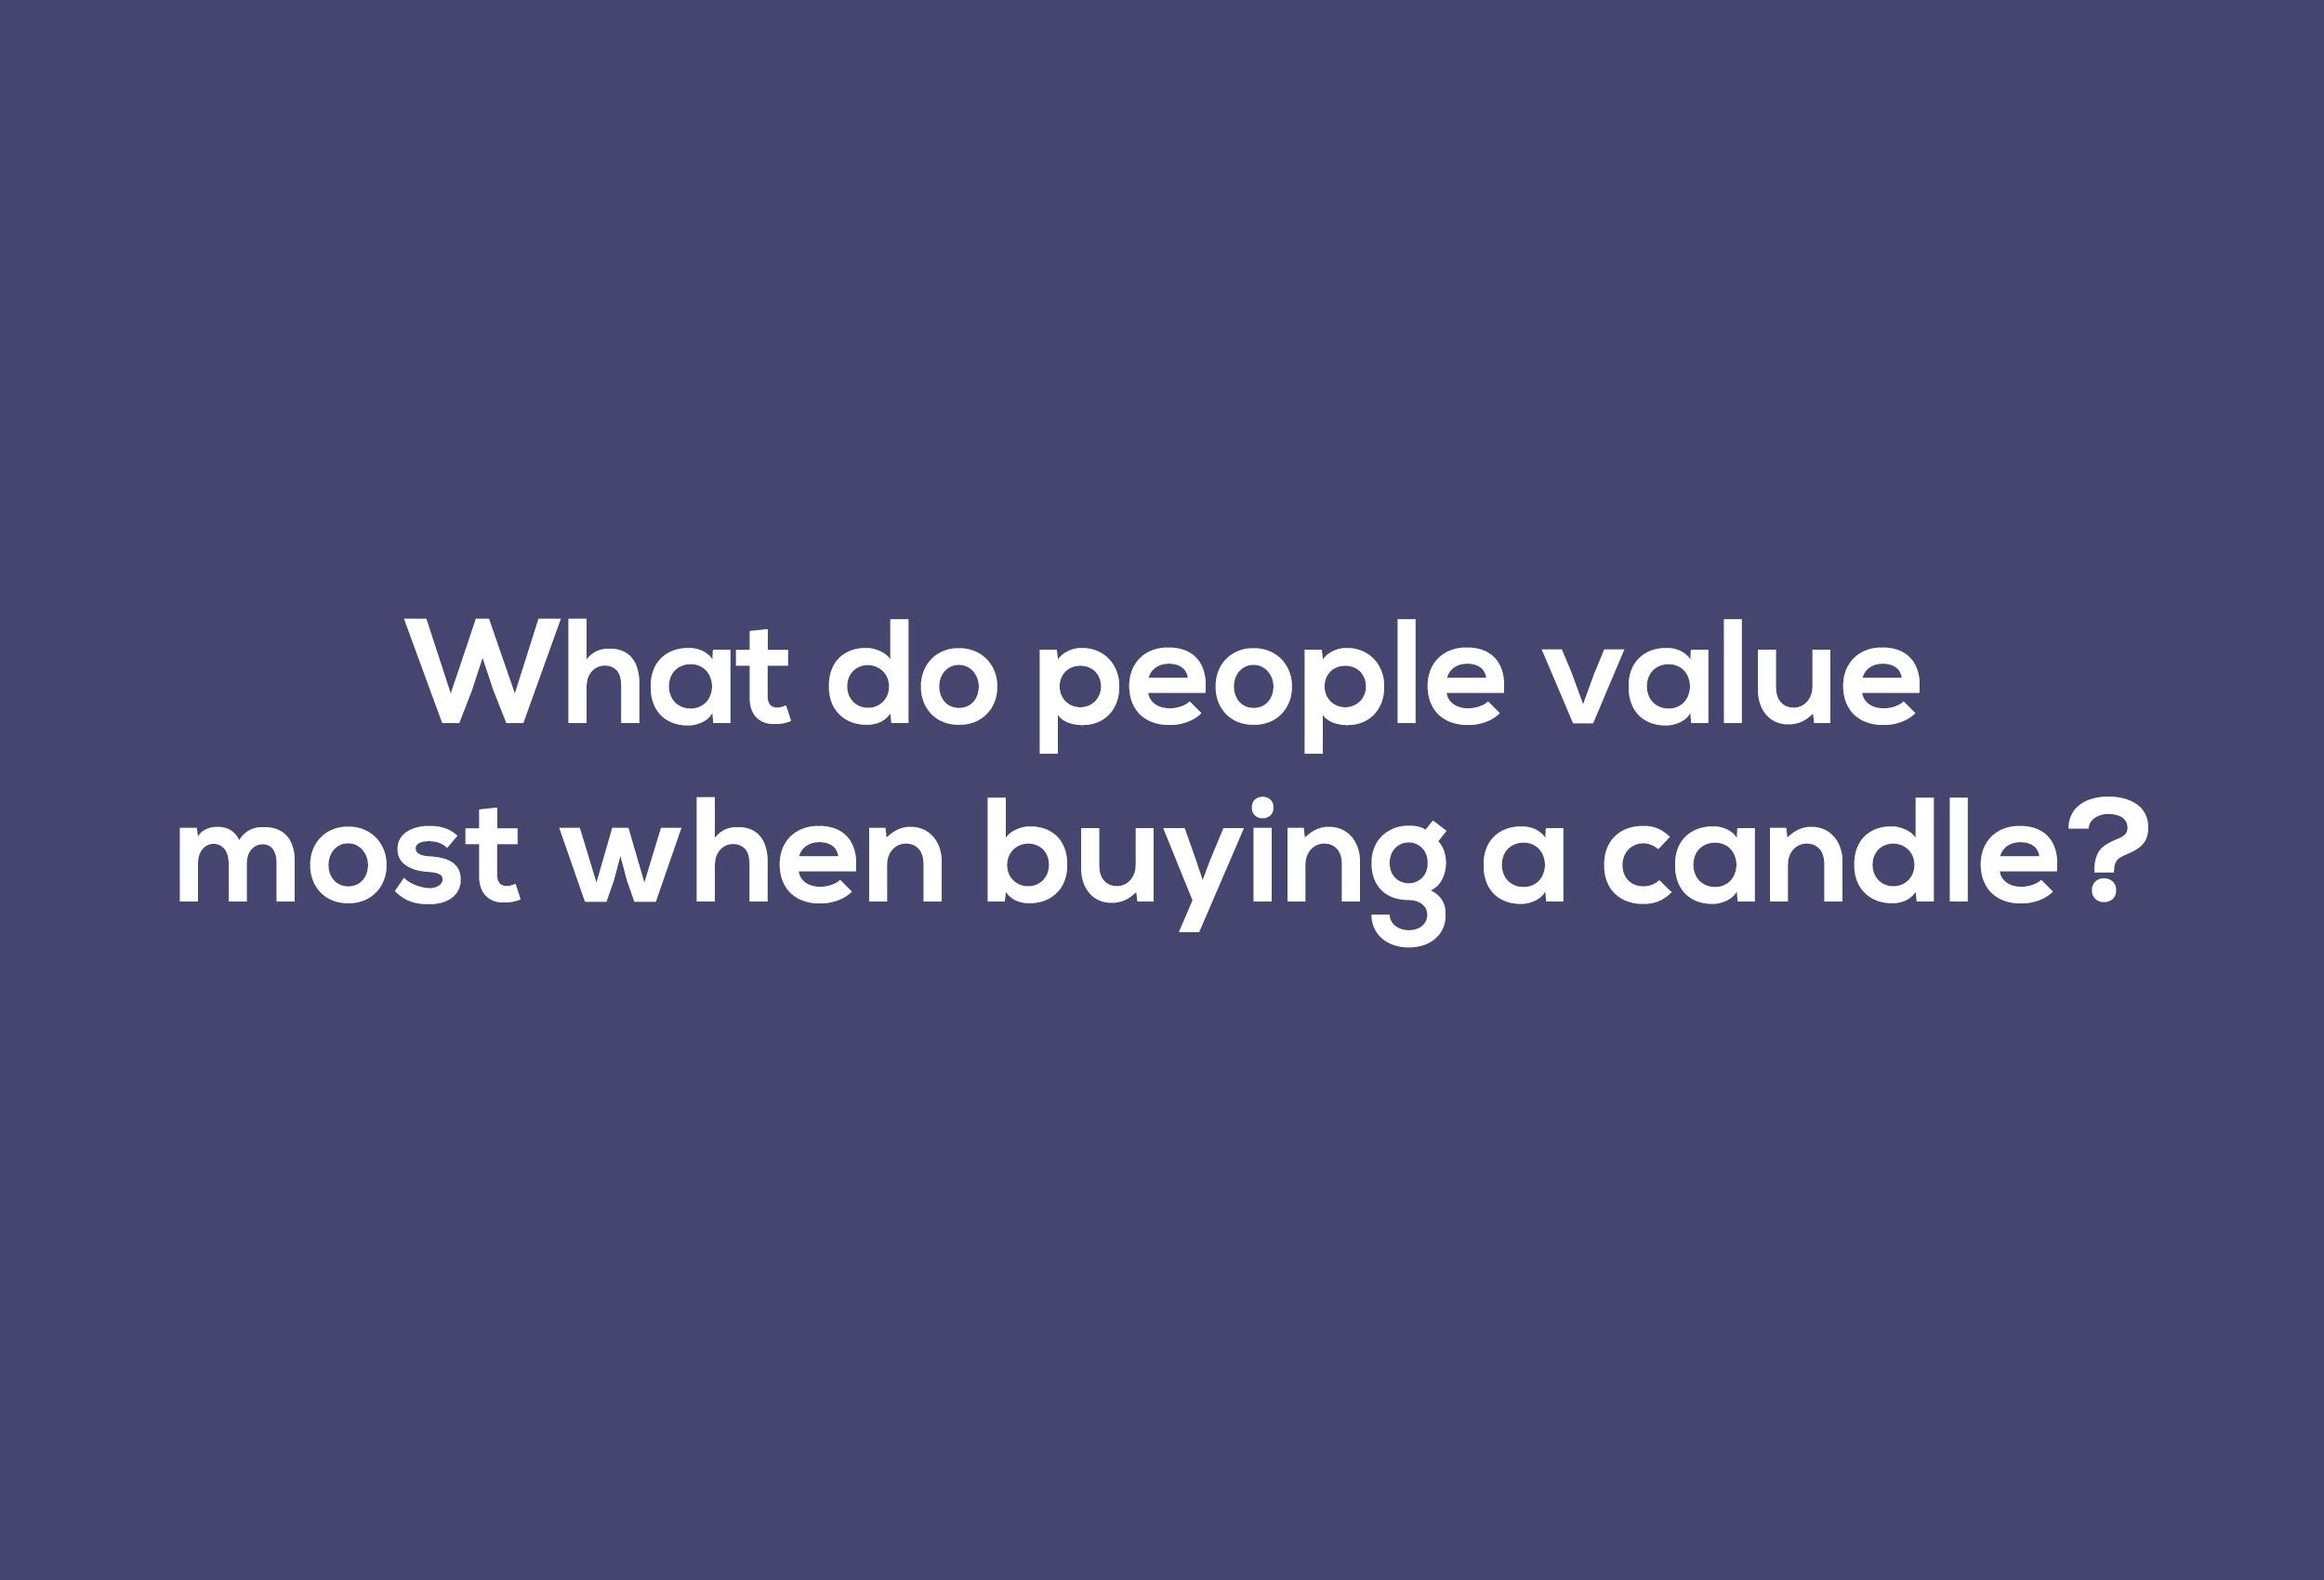 What-do-people-value-most-when-buying-a-candle